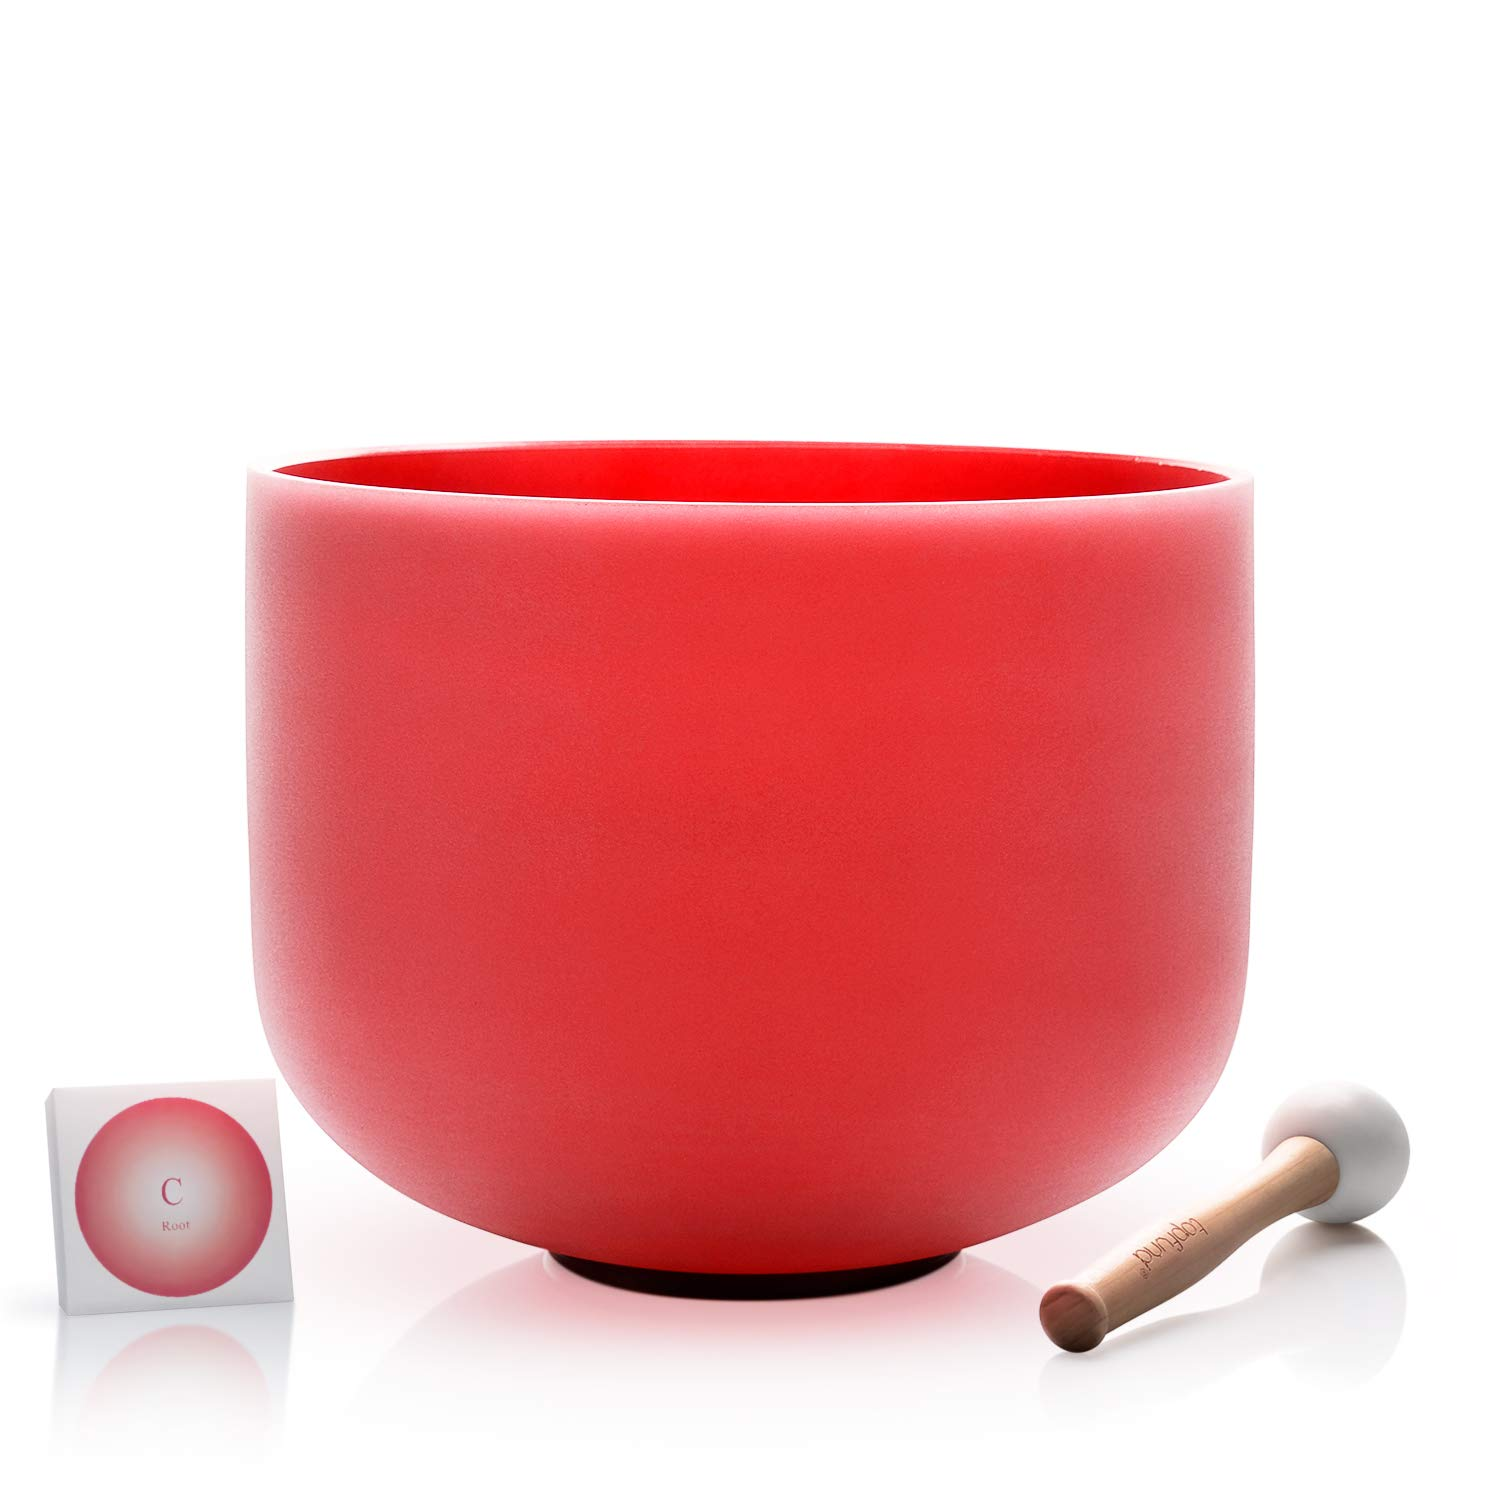 TOPFUND C Note Crystal Singing Bowl Root Chakra Red Color 12 inch O-ring and Rubber Mallet Included by TOPFUND